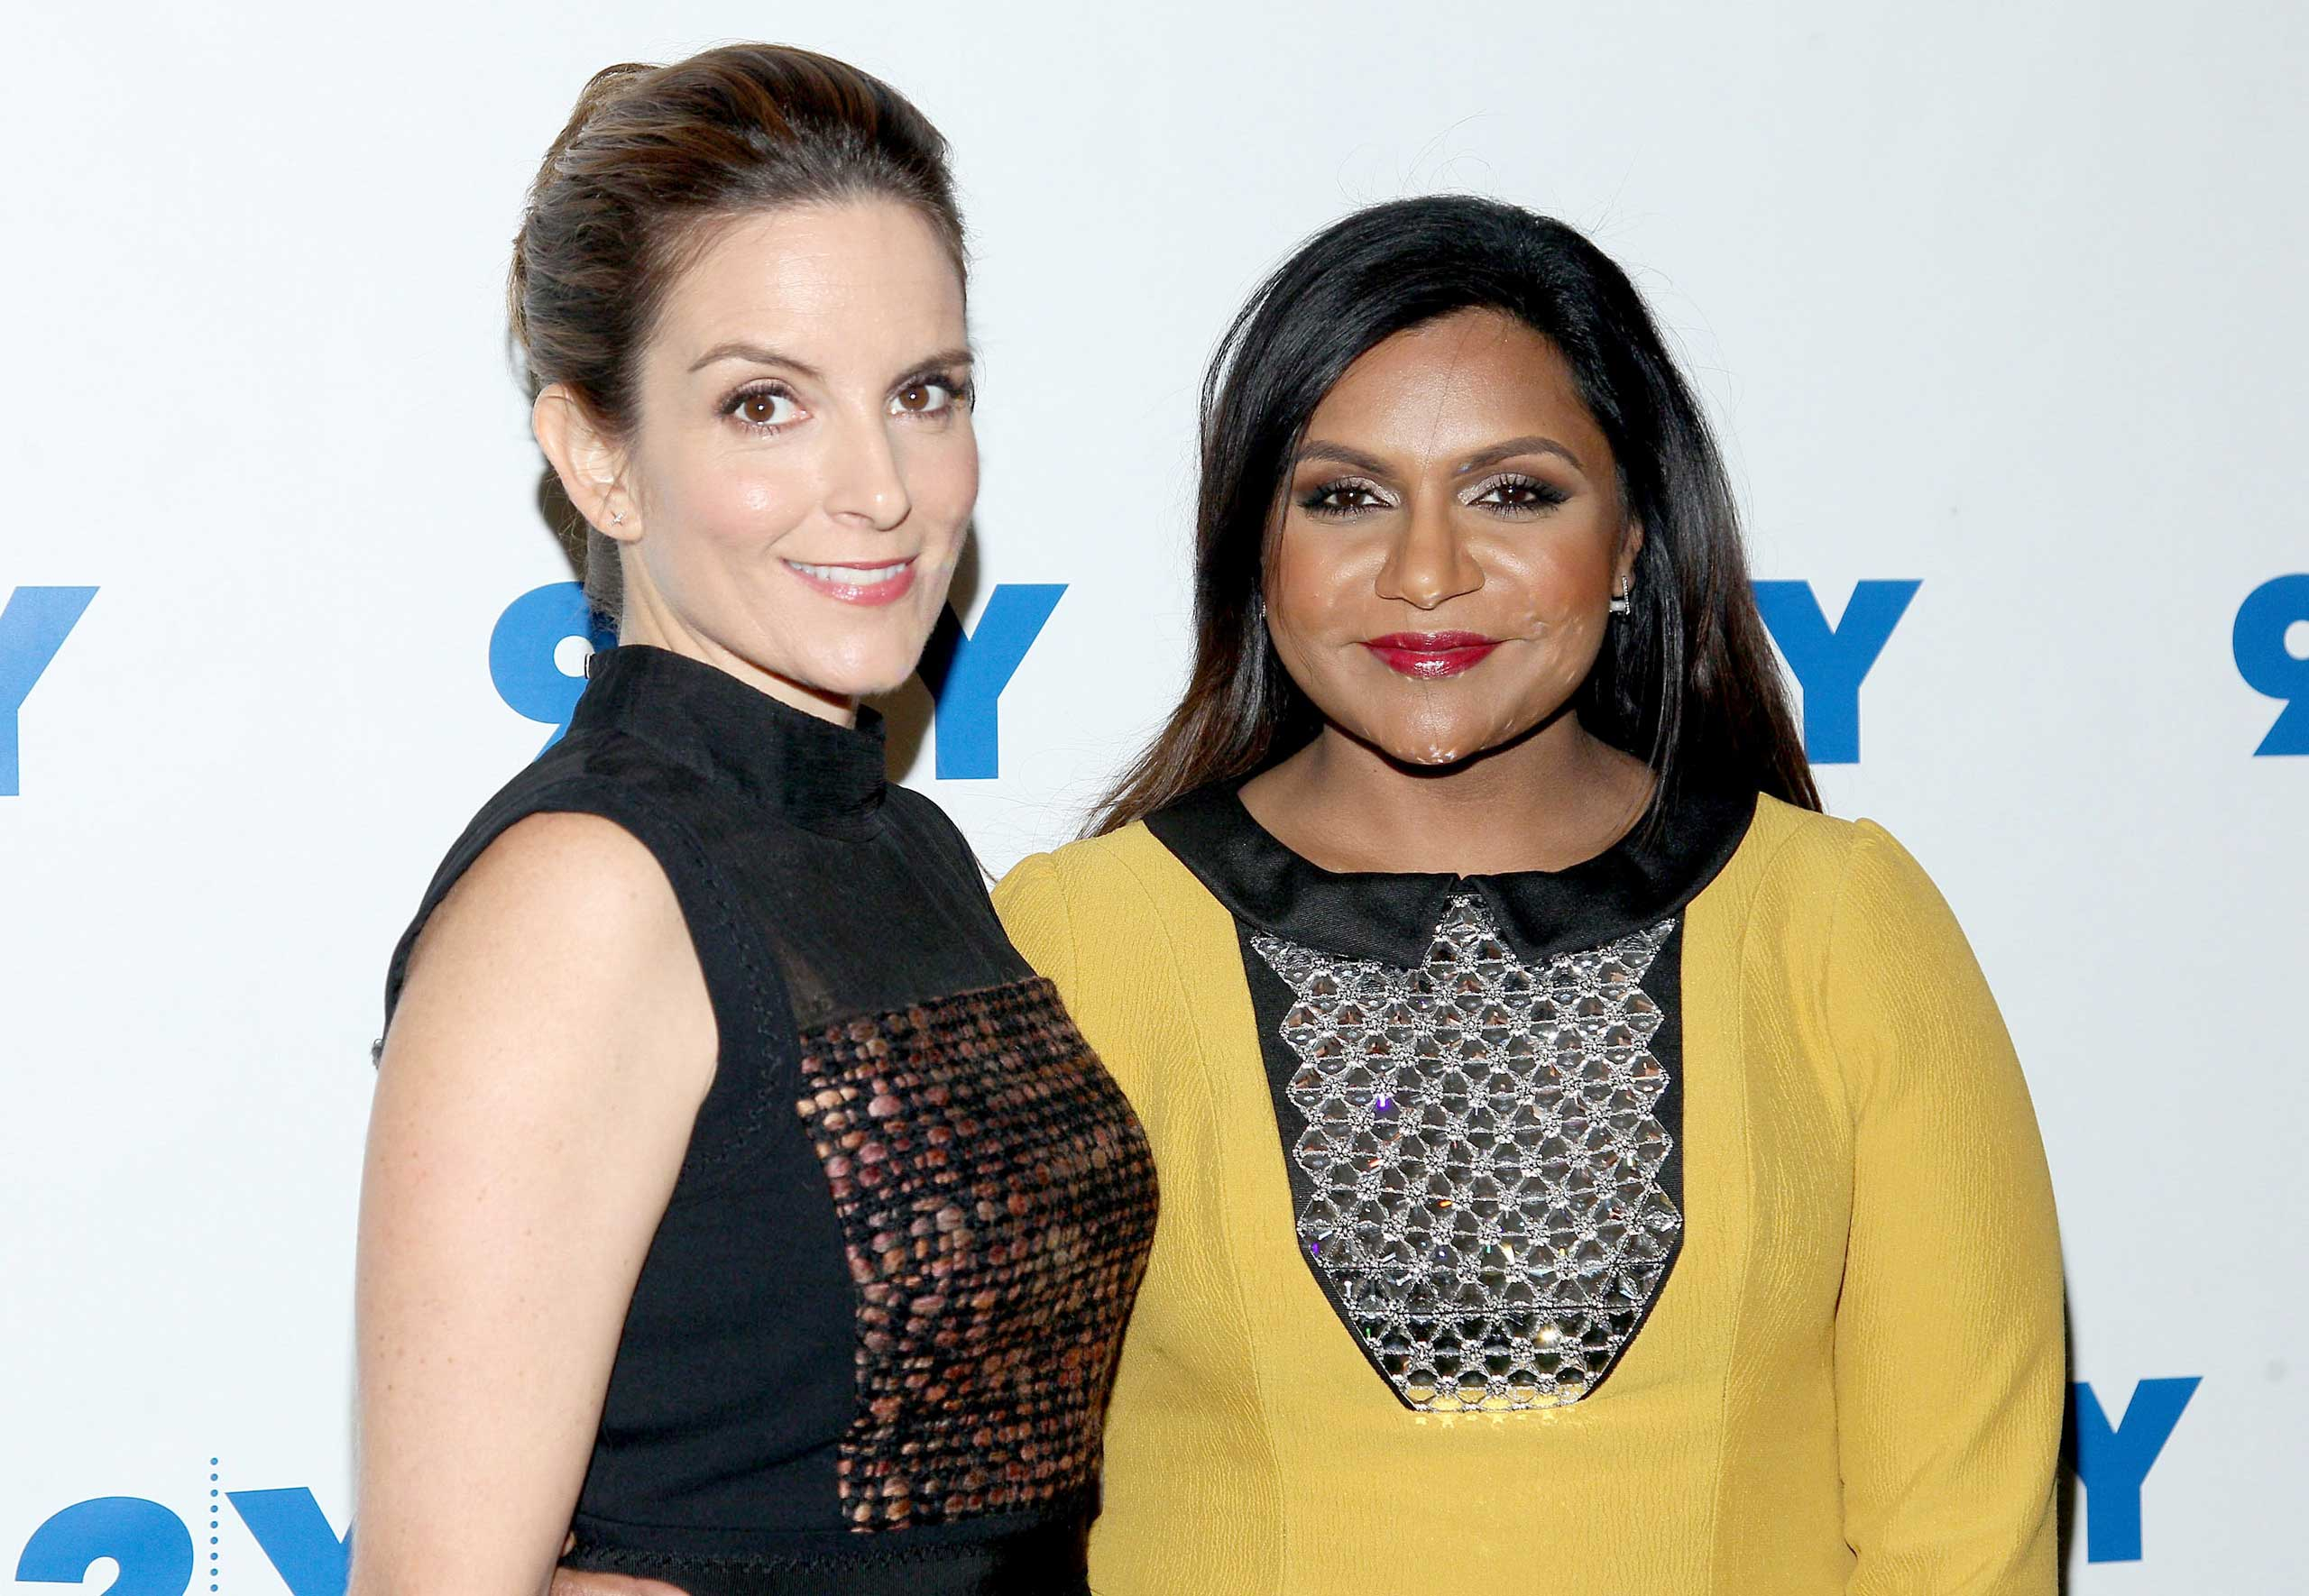 Tina Fey and Mindy Kaling attend 92nd Street Y Presents: Mindy Kaling In Conversation With Tina Fey at 92nd Street Y in New York City, on Sept. 16, 2015.